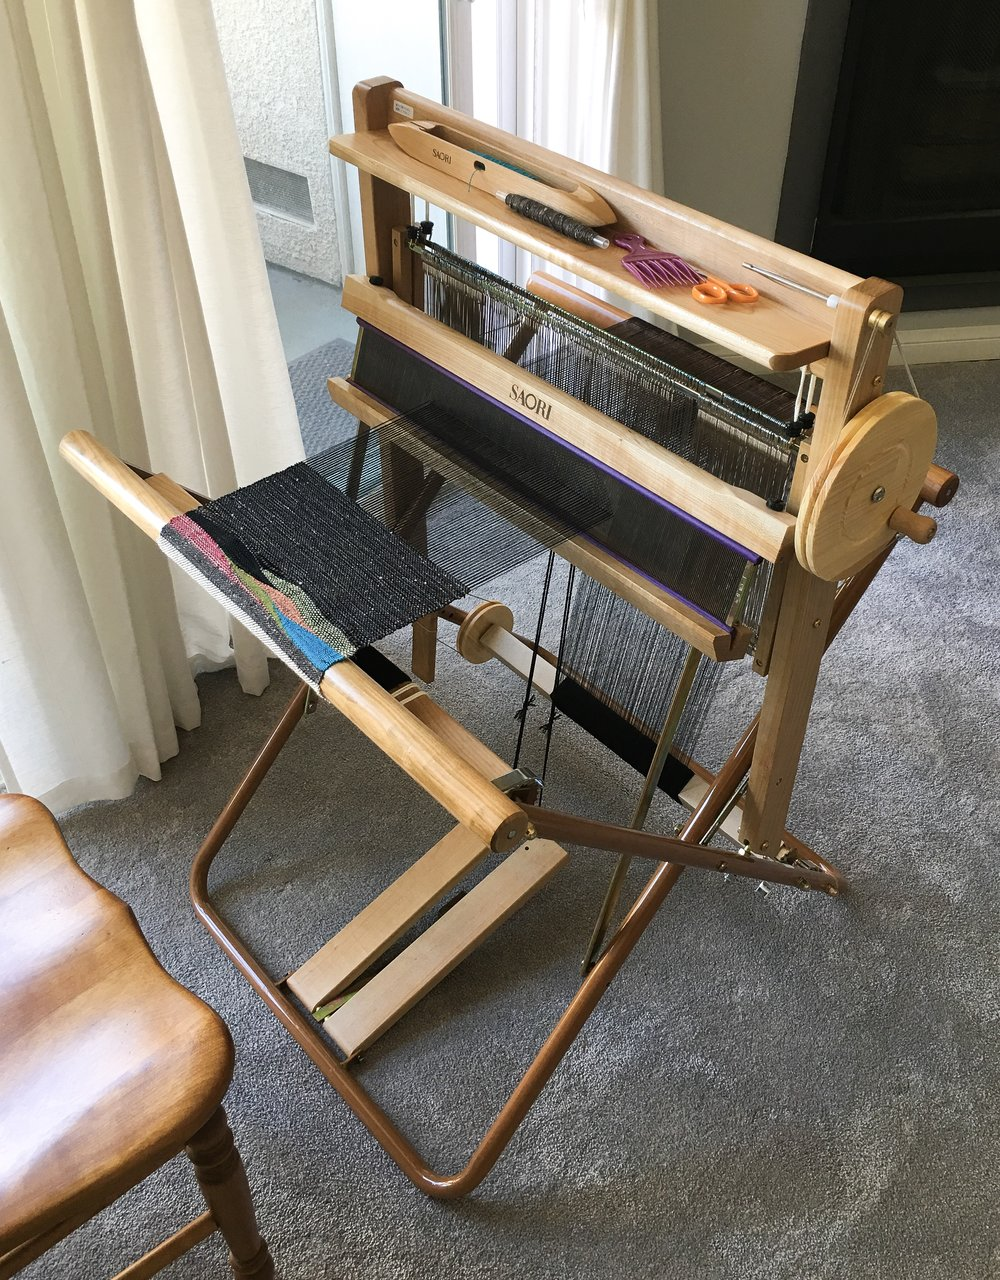 My new friend… - Here she is. In less than a week, I have already spent over 40 hours seated in front of this beautiful loom.